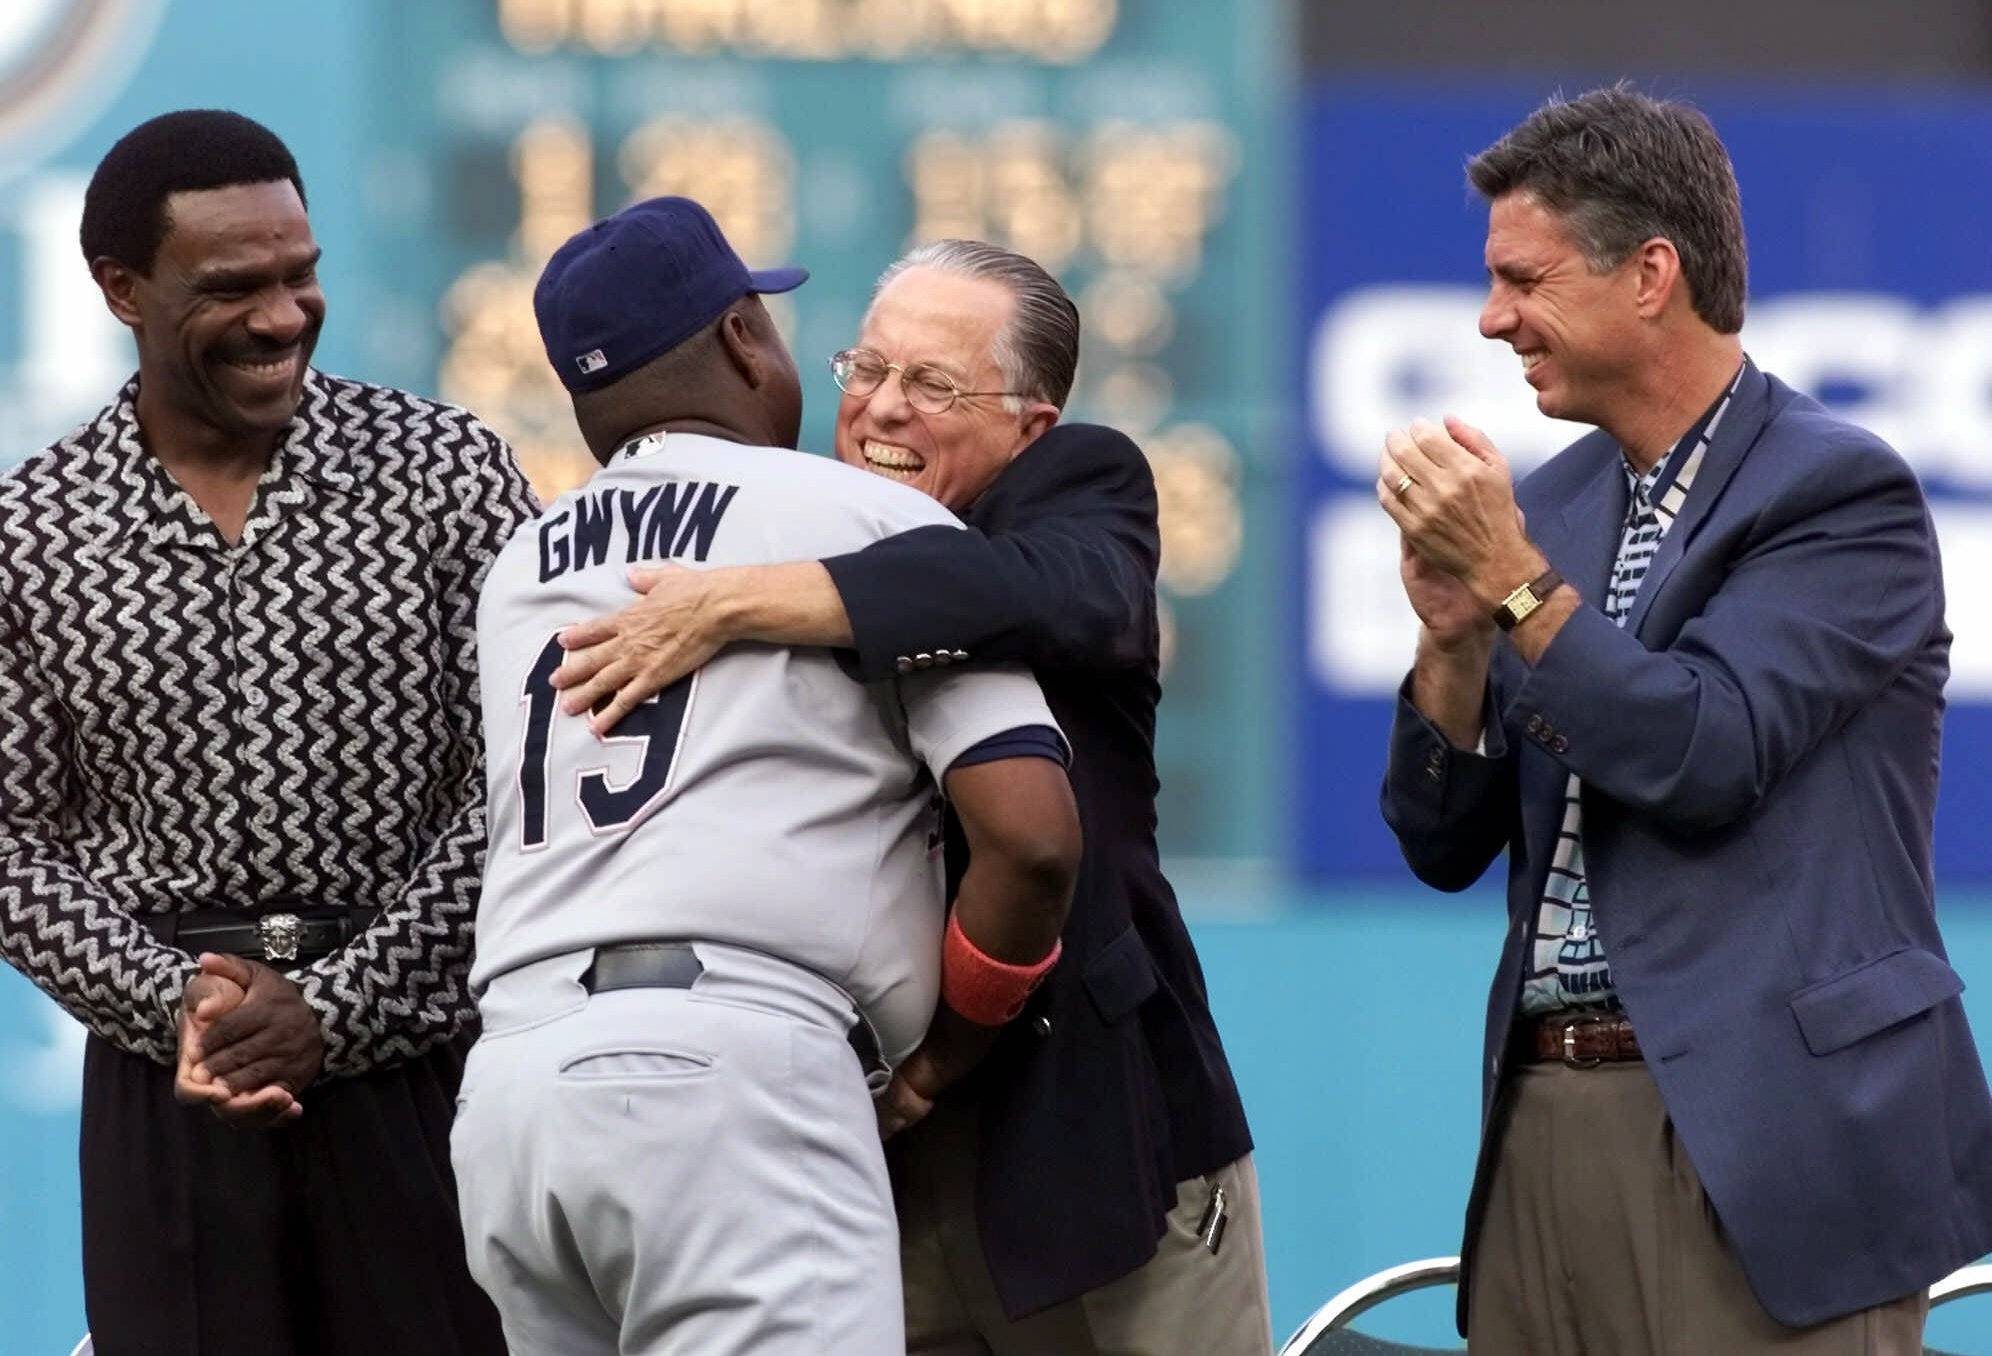 San Diego Padres legend Tony Gwynn (19) embraces Bill Beck, the Florida Marlins director of team travel, as former Cubs slugger Andre Dawson, left, and Marlins general manager David Dombrowski look on as Gwynn is honored by the Marlins during a pre-game ceremony Saturday, Aug. 25, 2001, in Miami.